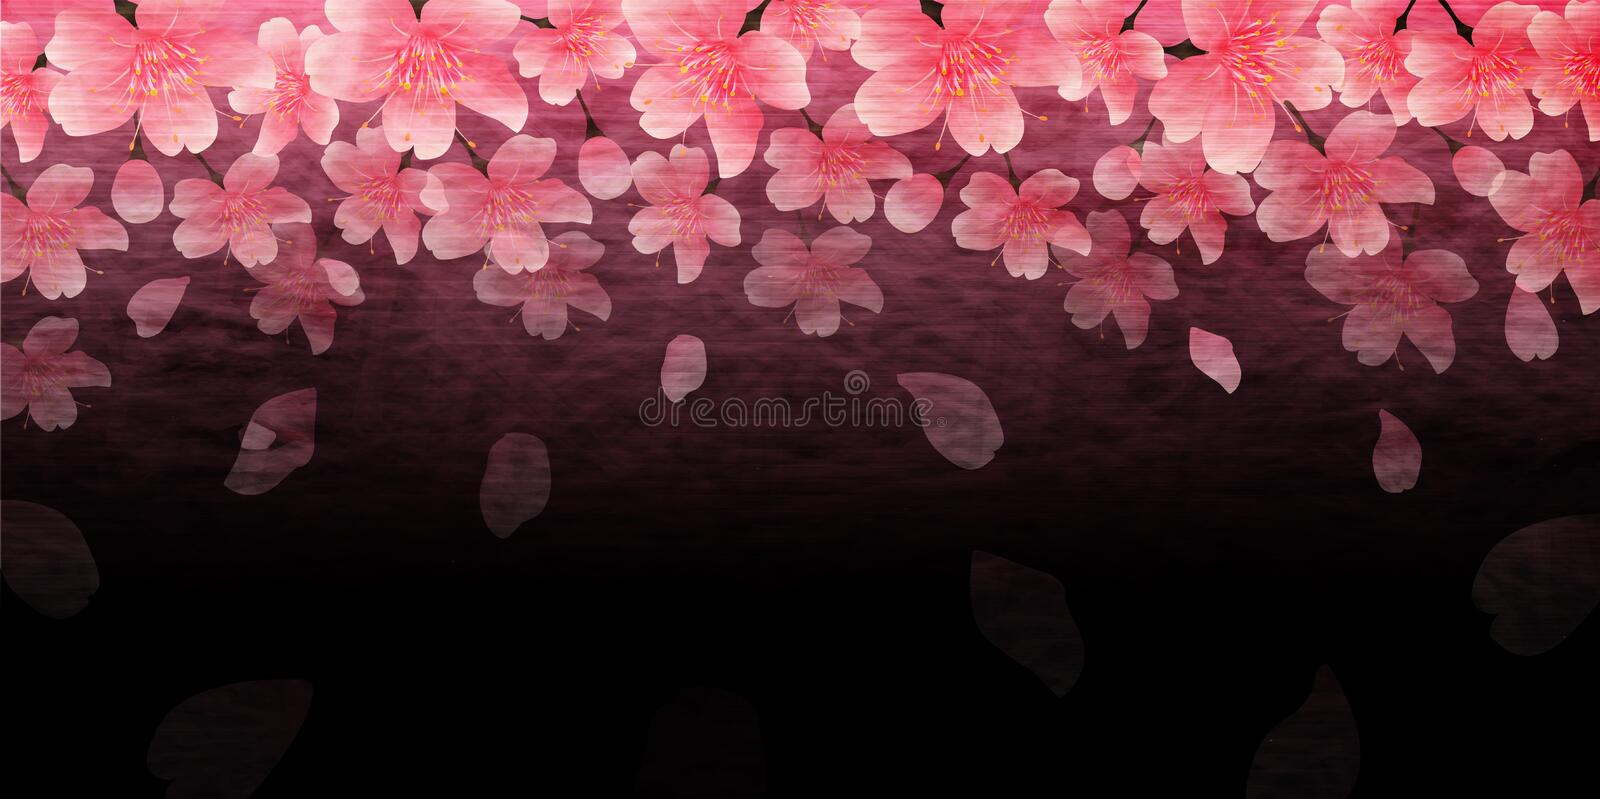 Cherry blossom illustration vector illustration